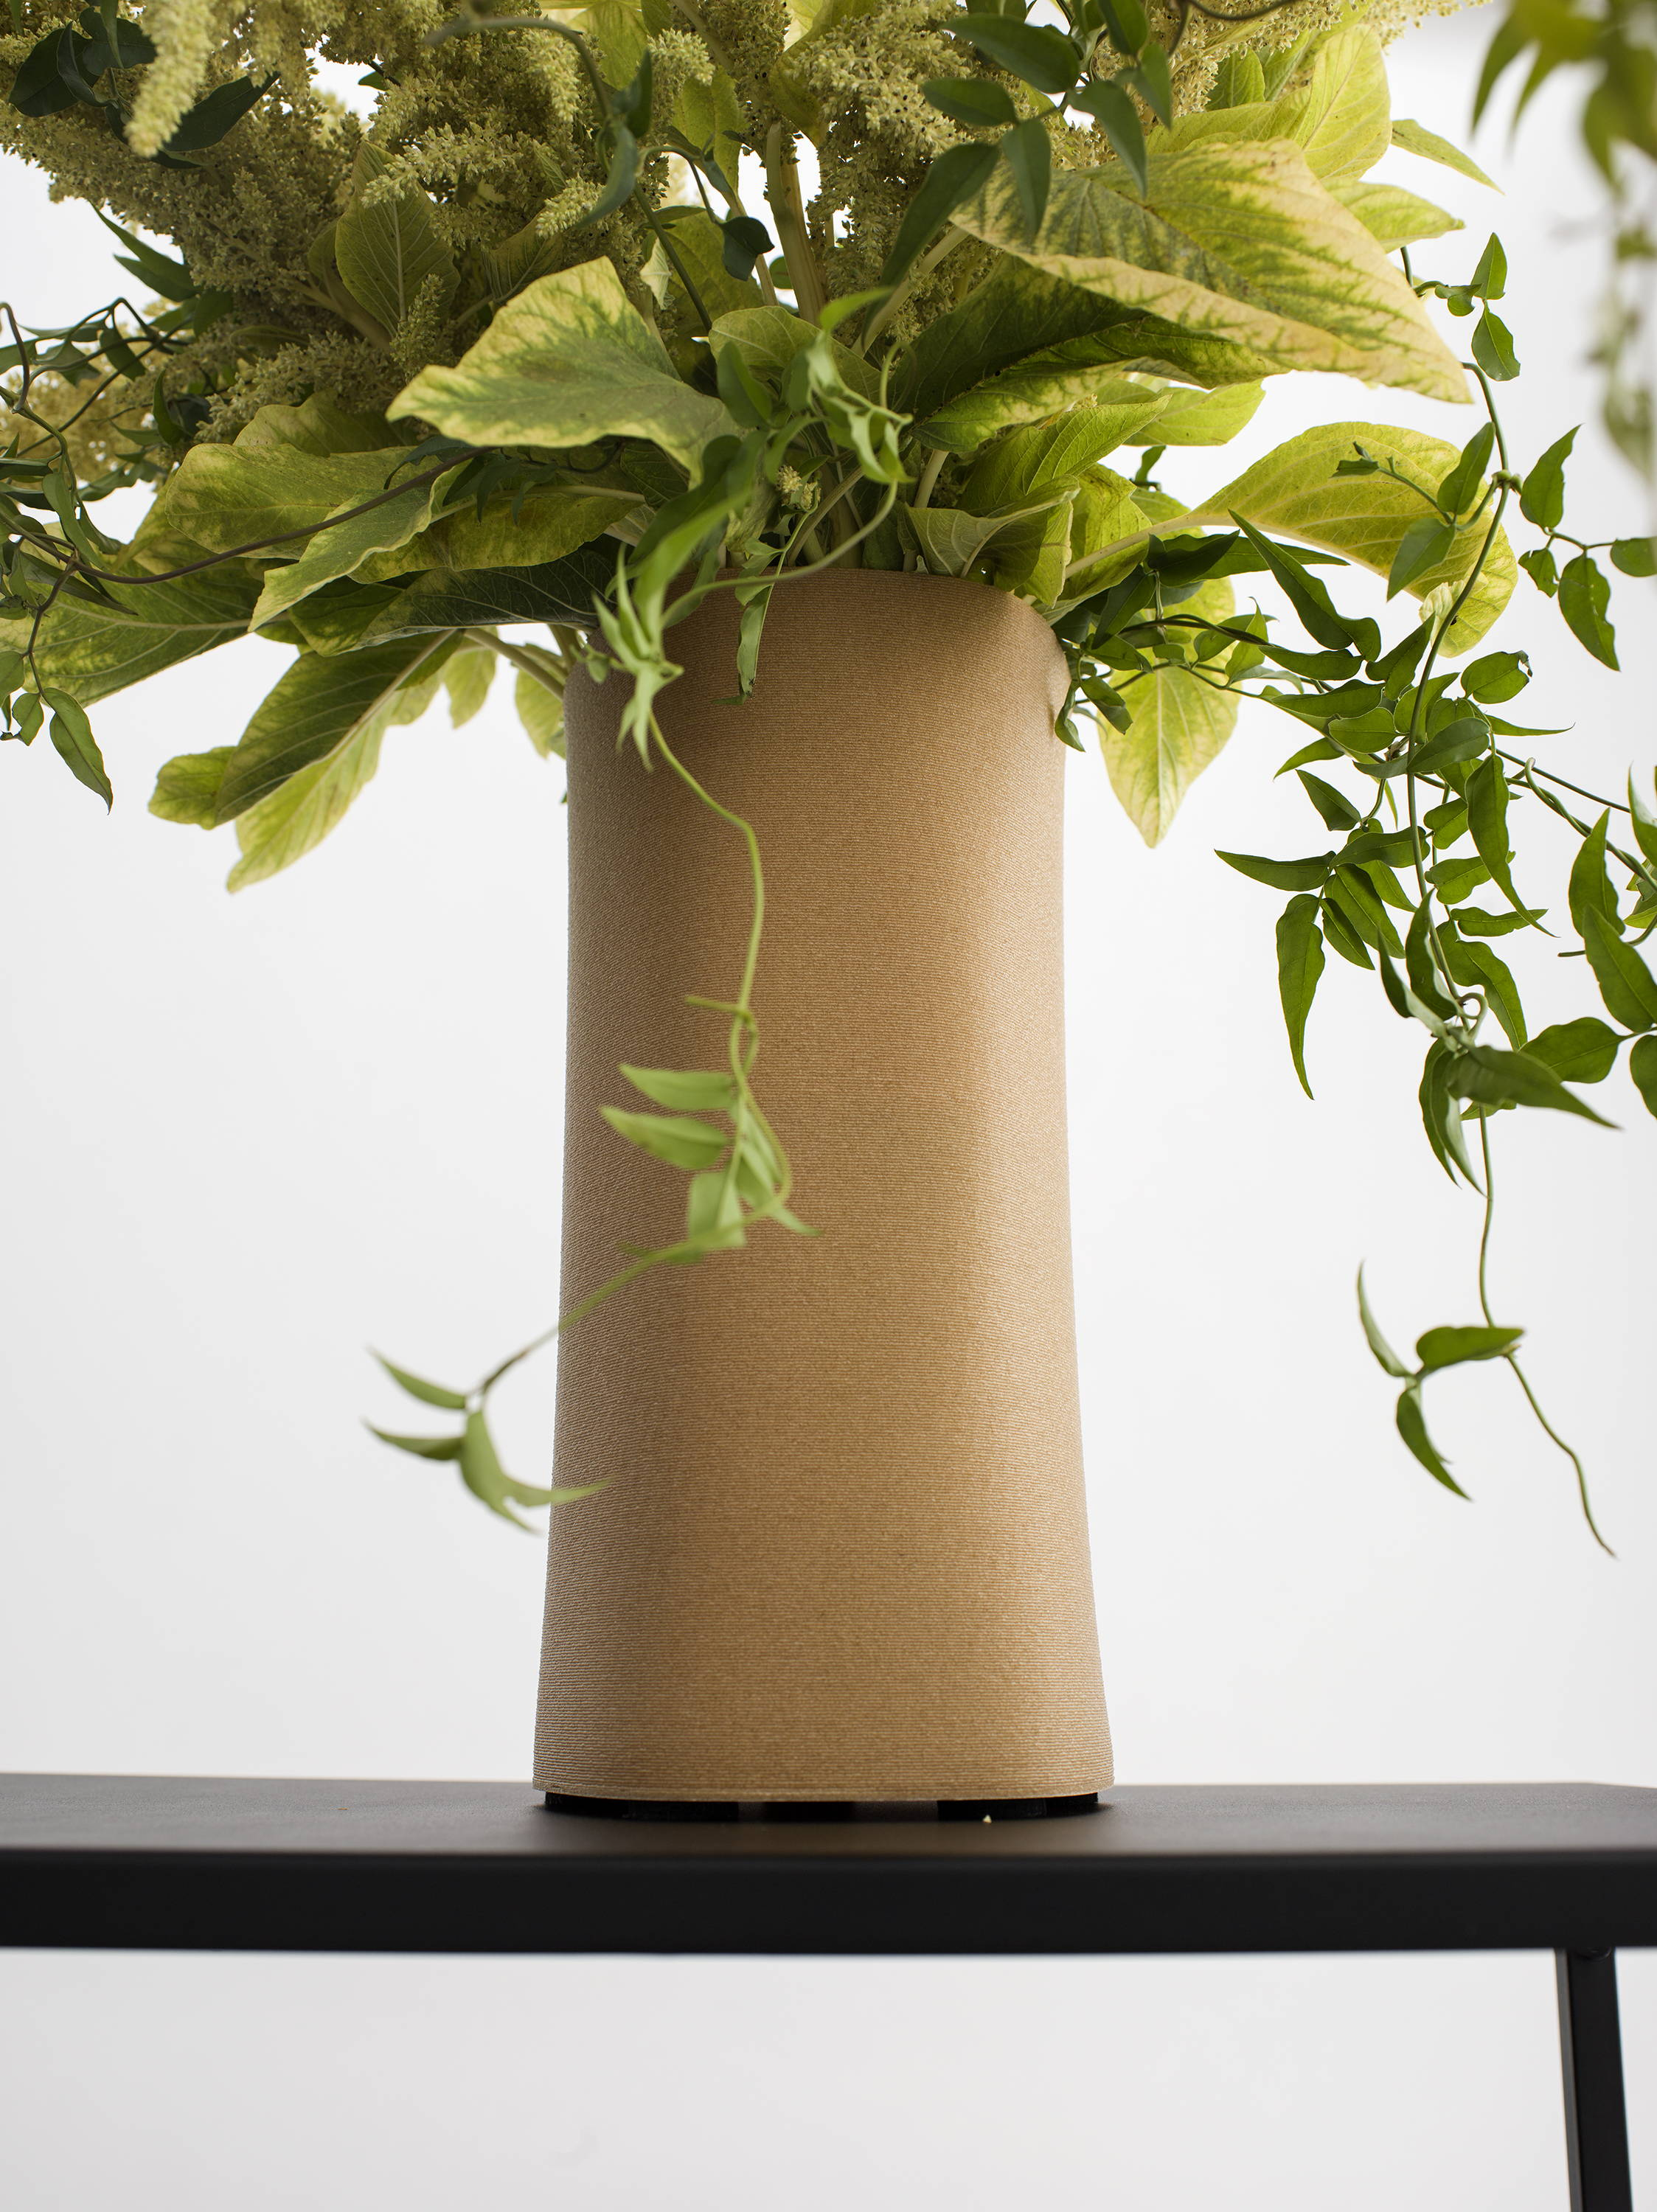 Tall custom vase with greenery made of 3D printed plant resin sitting on table